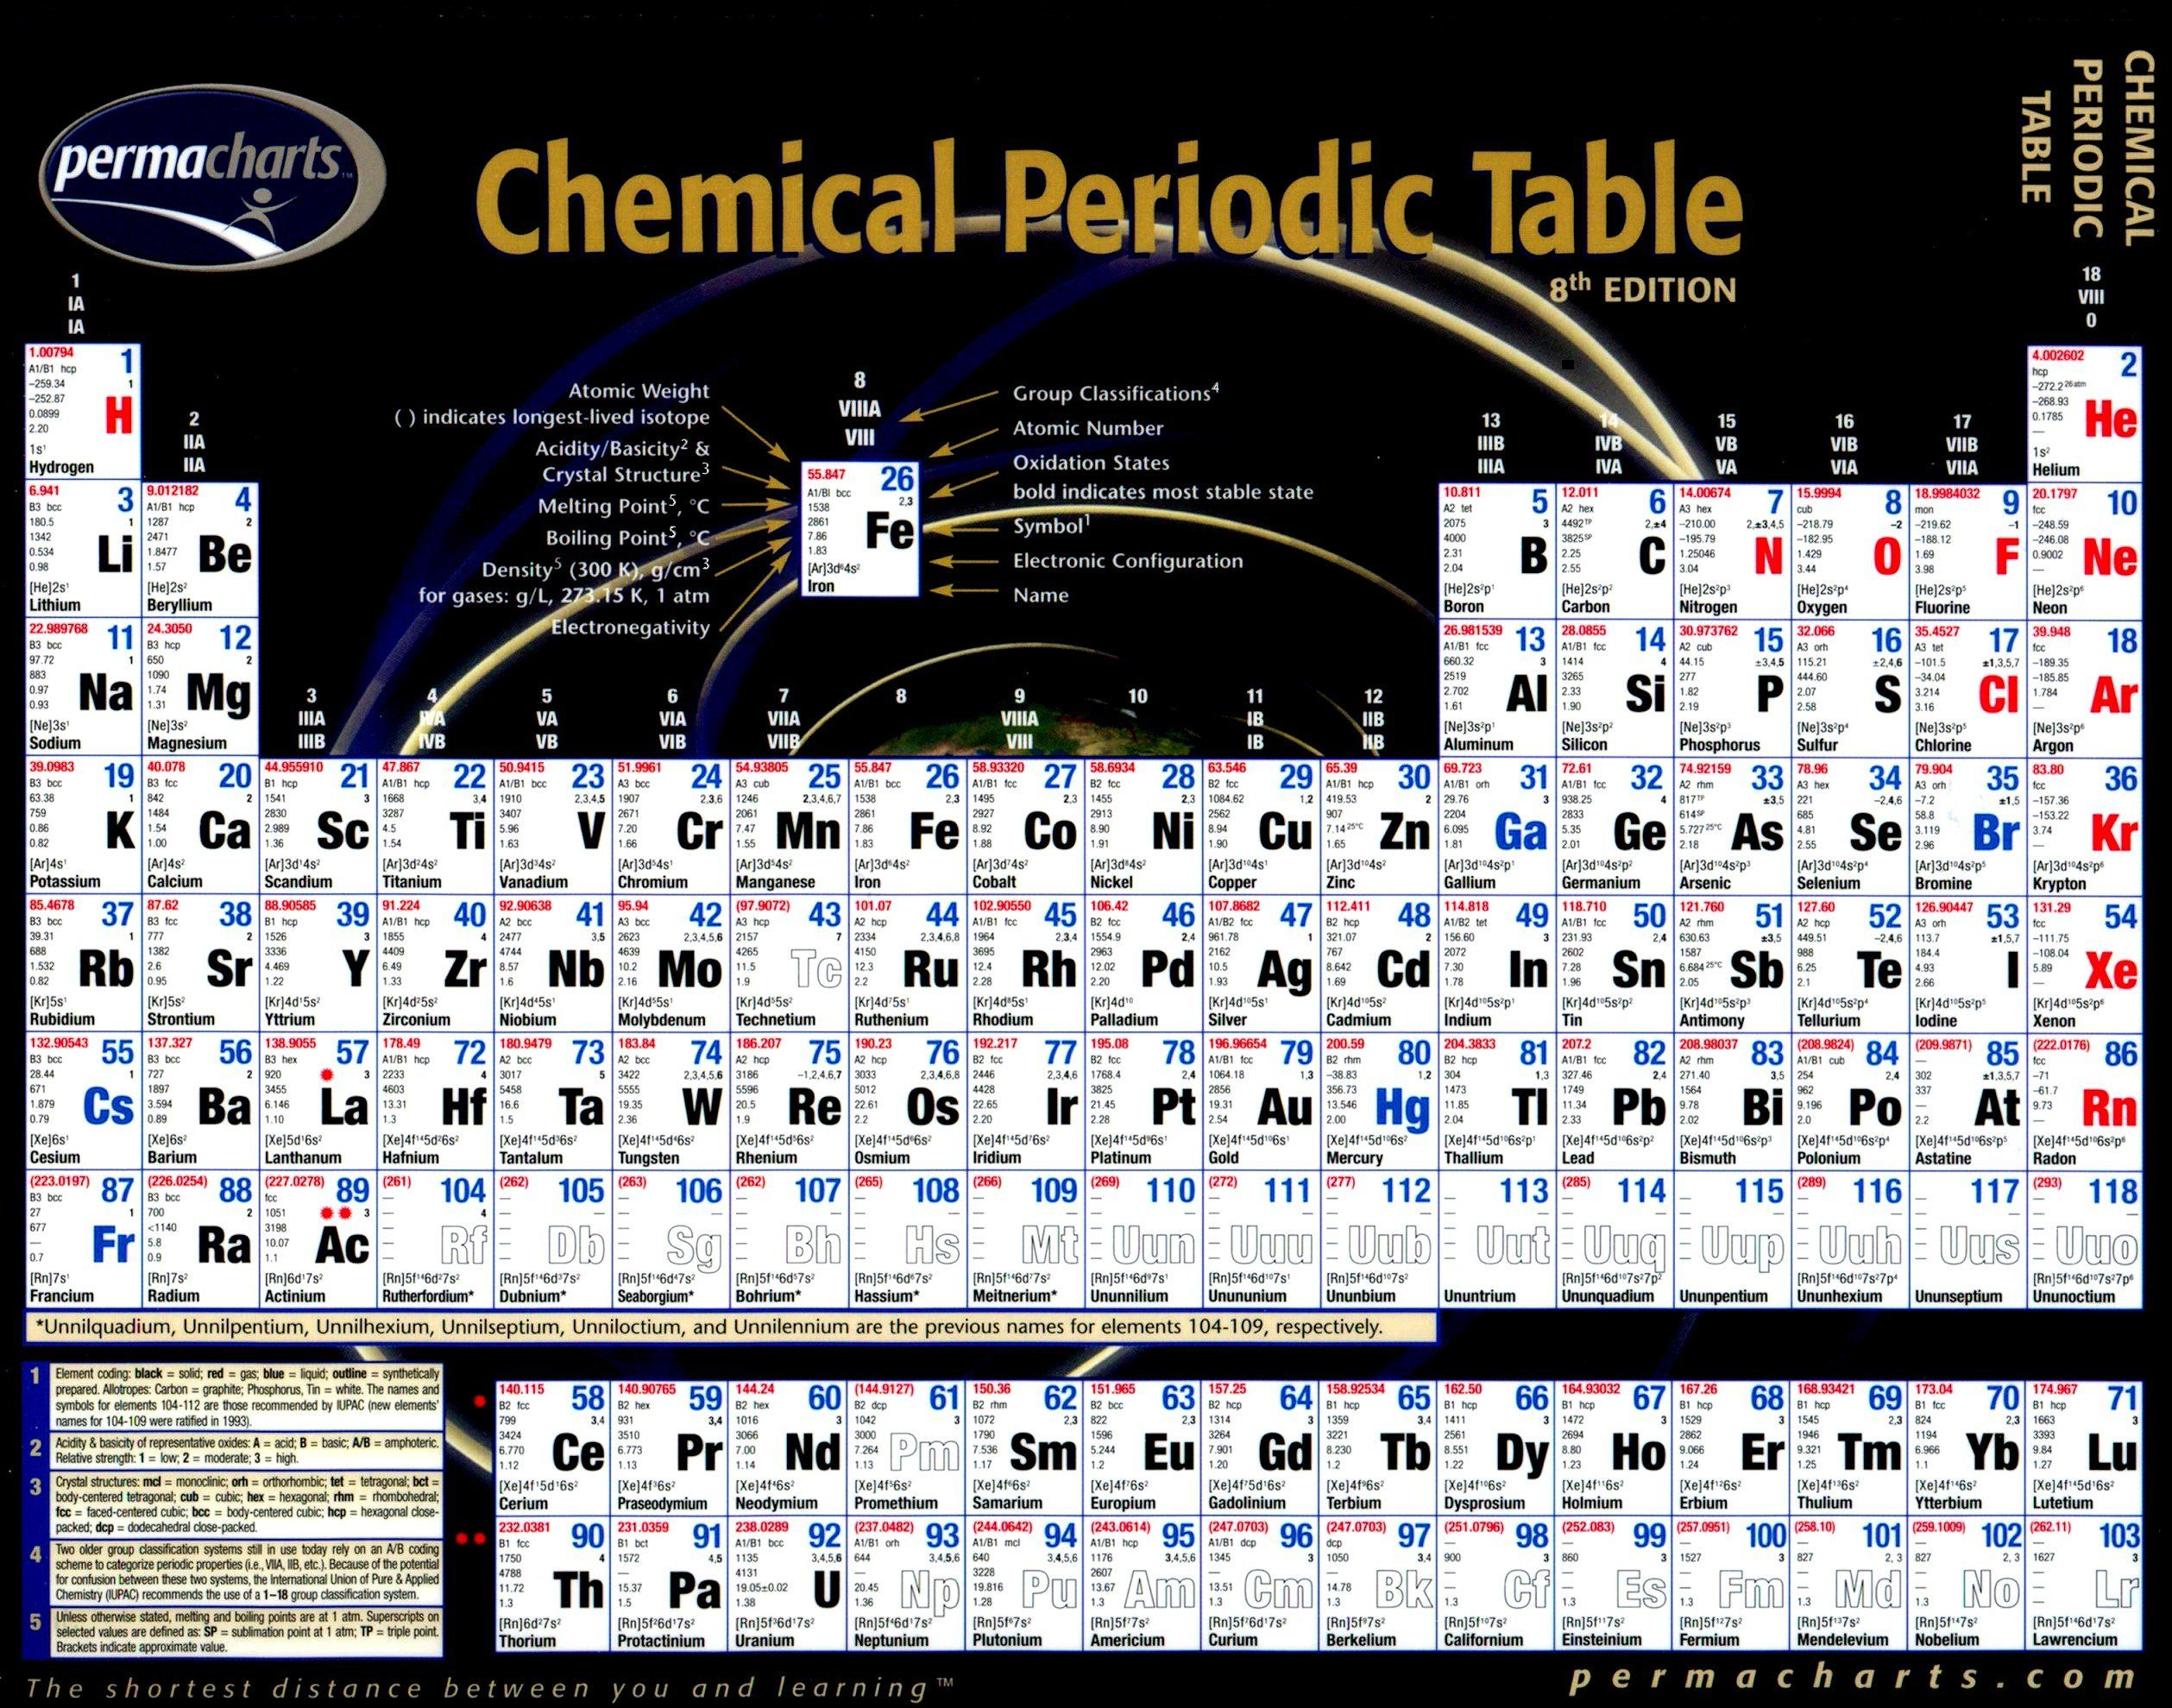 Periodic table of the elements chemistry pinterest - Chemistry periodic table of elements ...